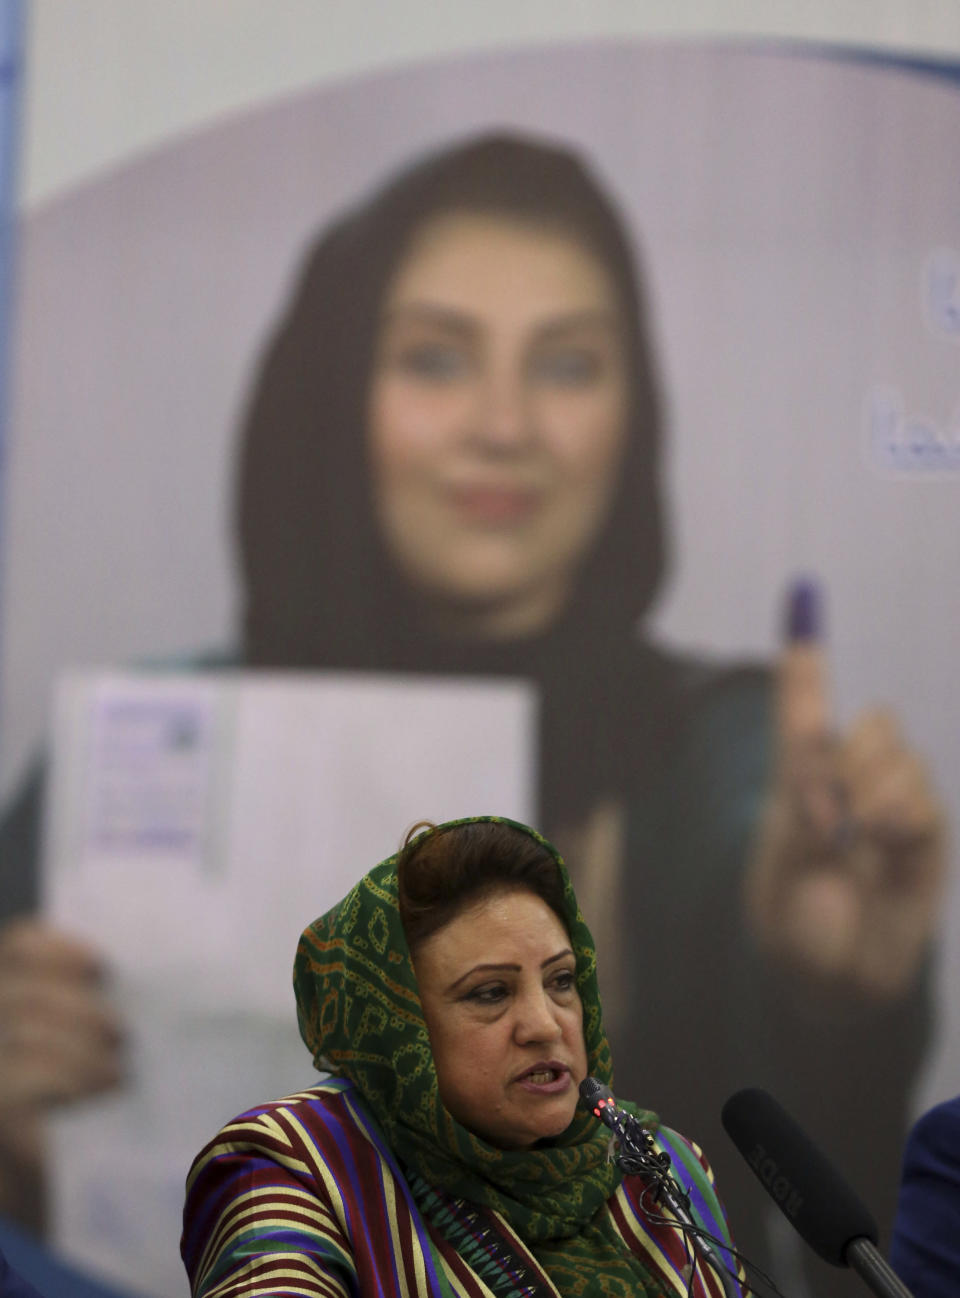 Hawa Alam Nuristani, chief of Election Commission of Afghanistan, speaks during a press conference at the Independent Election Commission office in Kabul, Afghanistan, Tuesday, Feb. 18, 2020. Afghanistan's independent election commission says President Ashraf Ghani has won a second term as president. The commission announced Tuesday that Ghani garnered 50.64% of the vote that took place on Sept. 28 last year to challenger and chief executive Abdullah Abdullah's 39.52%. (AP Photo/Rahmat Gul)